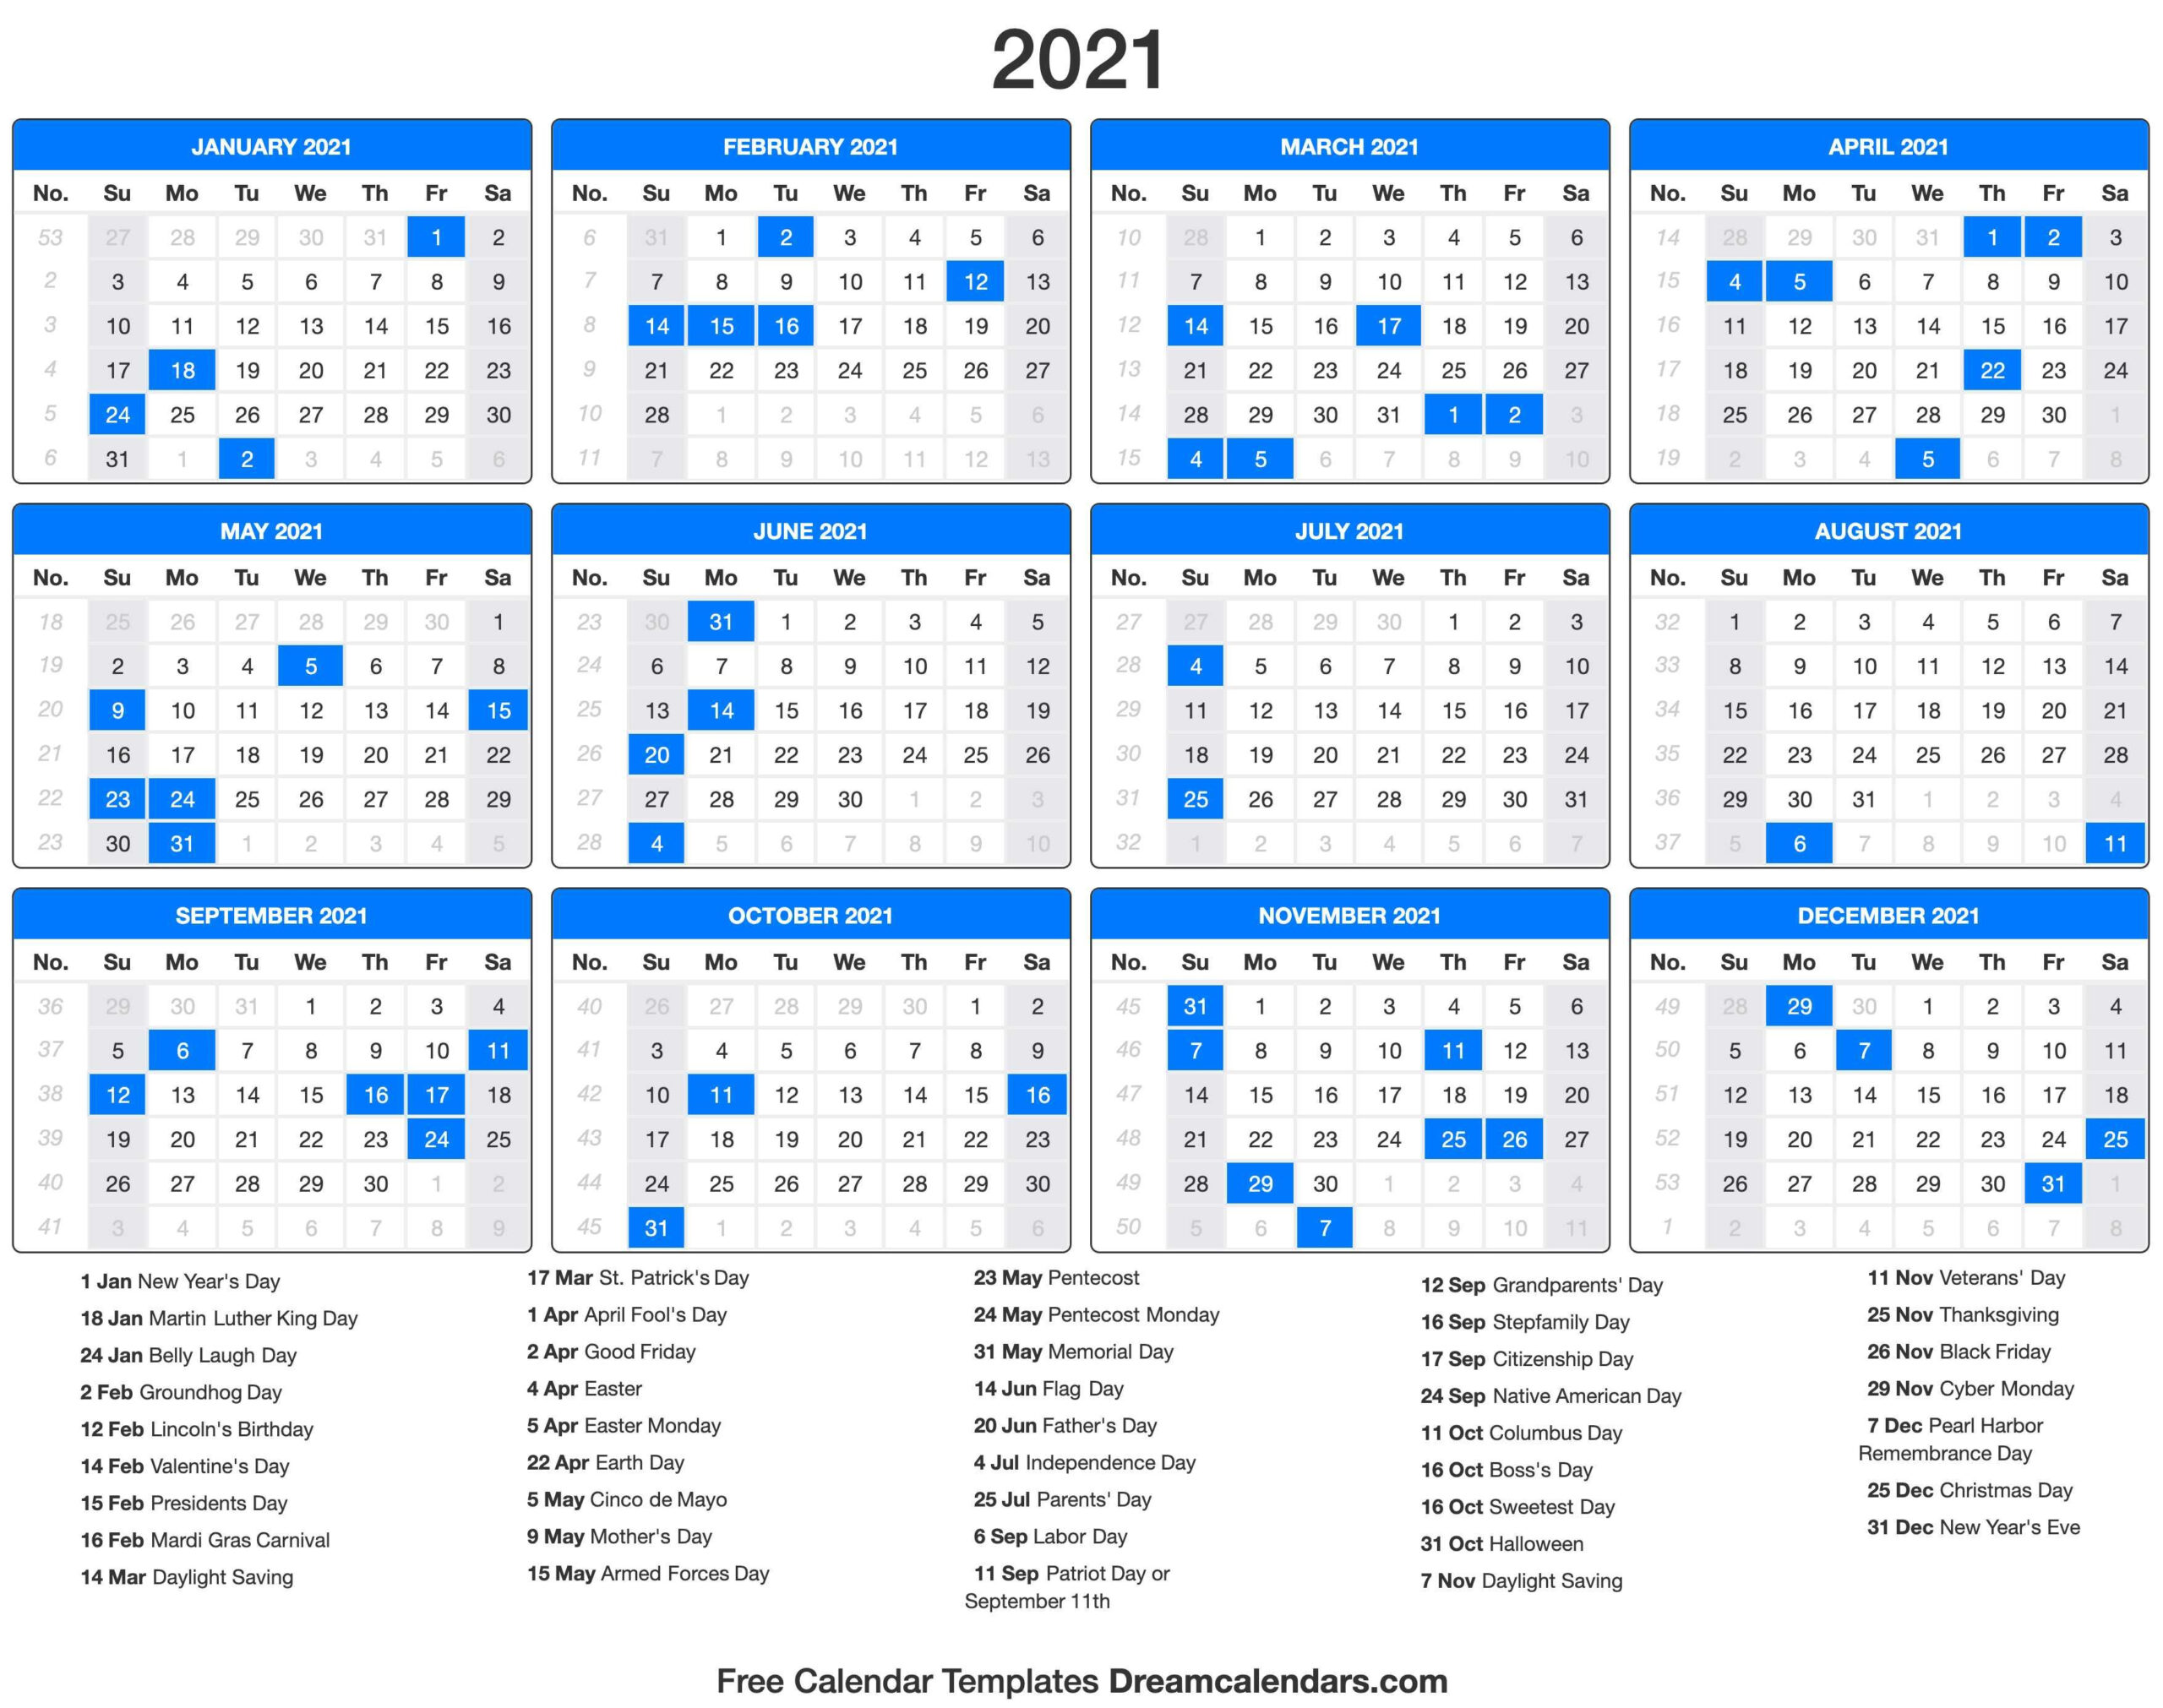 Printable 2021-2021 Catholic Calendar